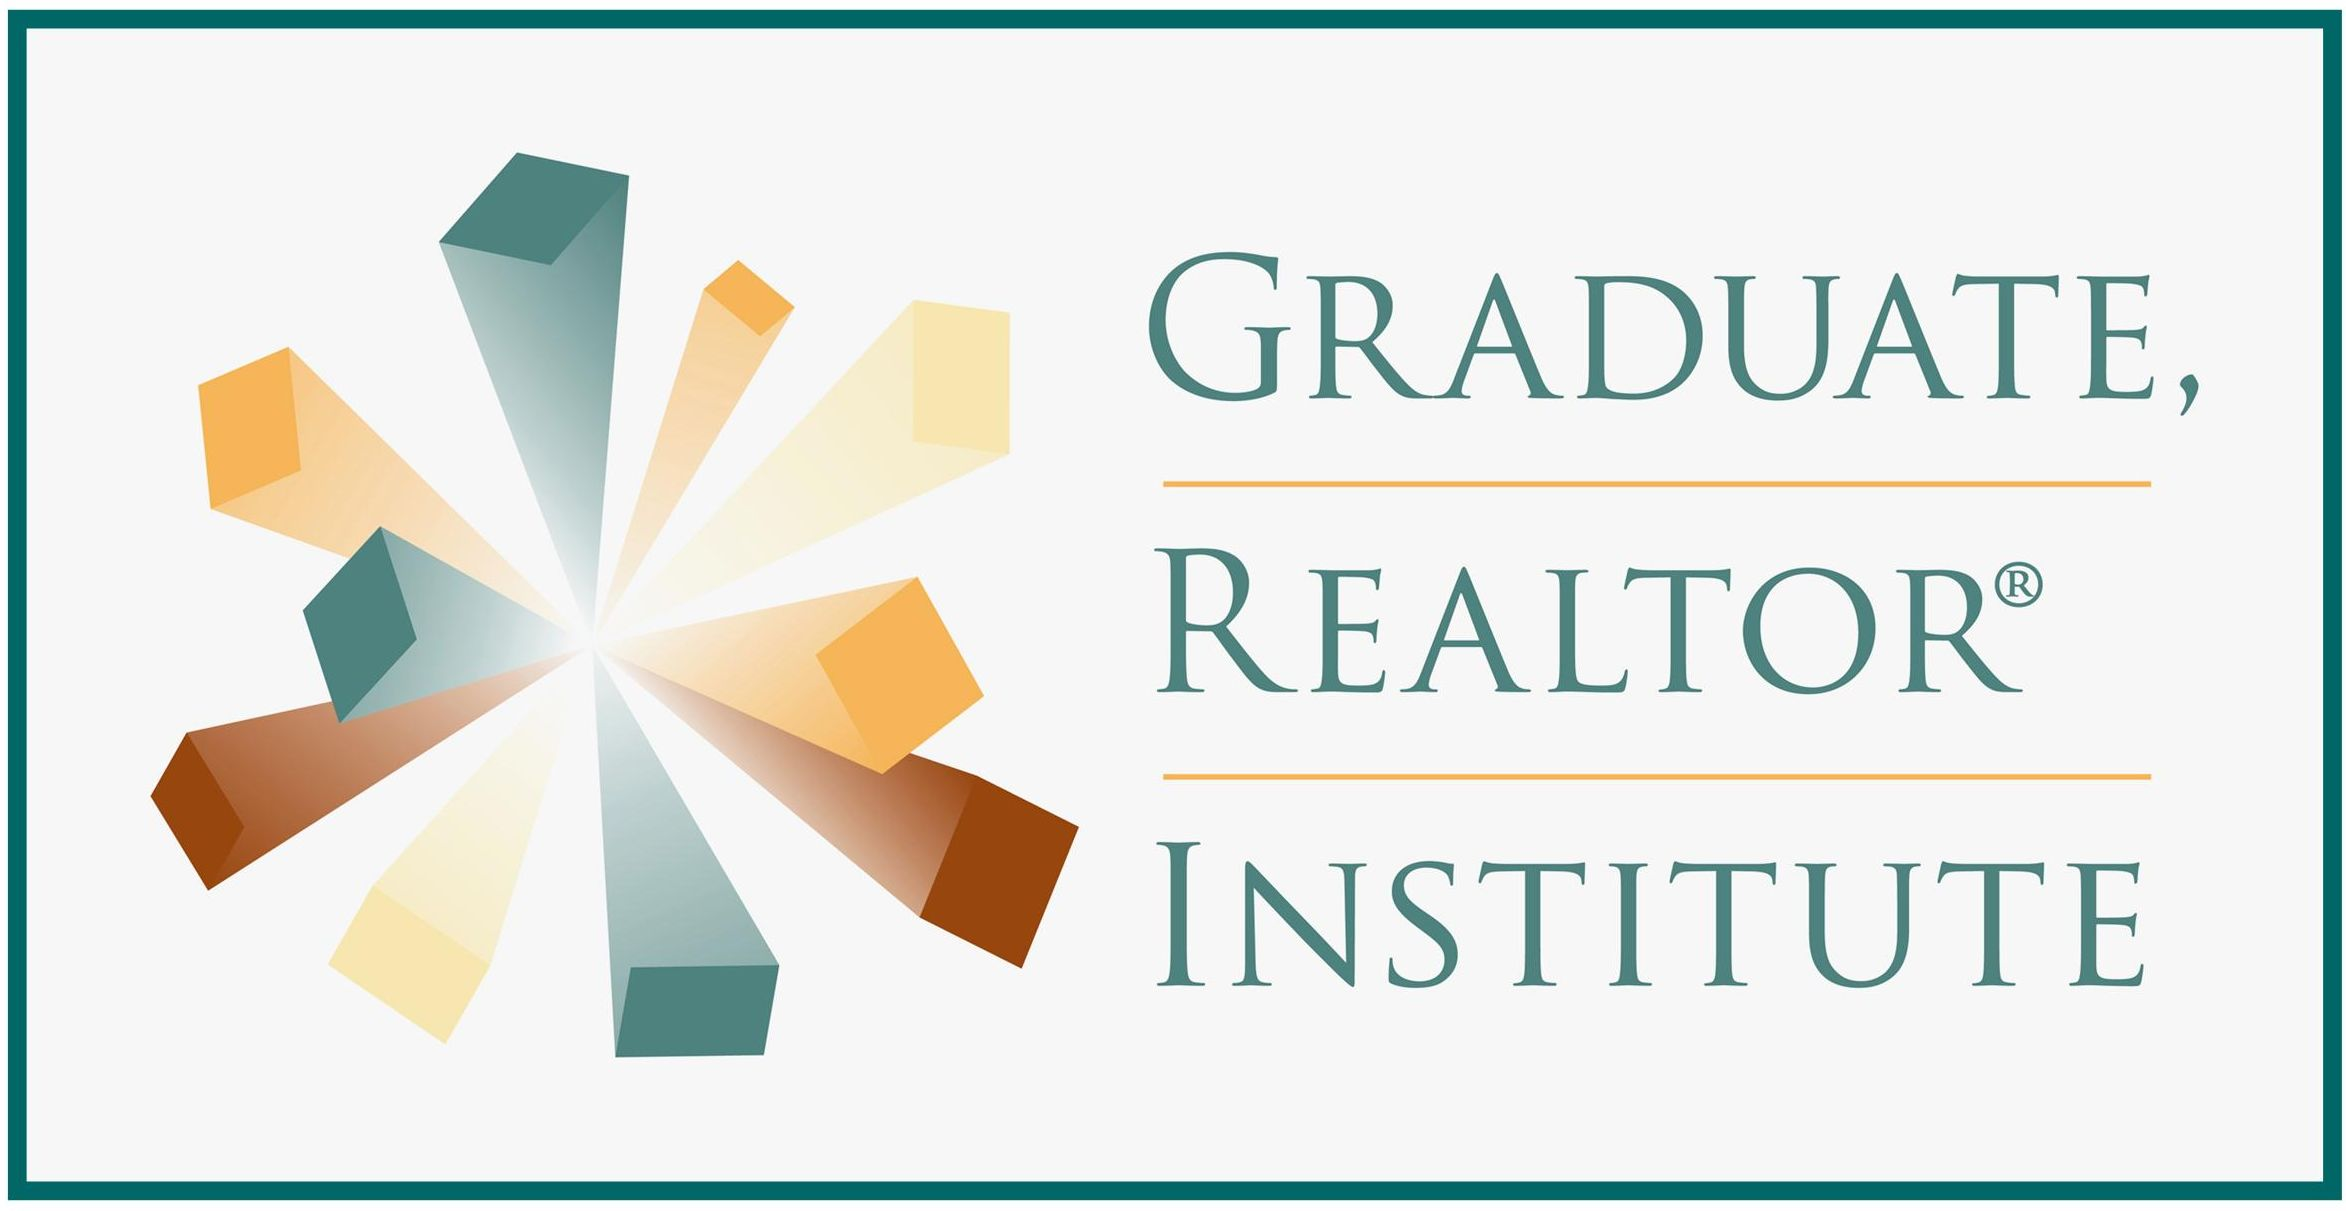 GRI - Graduate of Realtor Institute